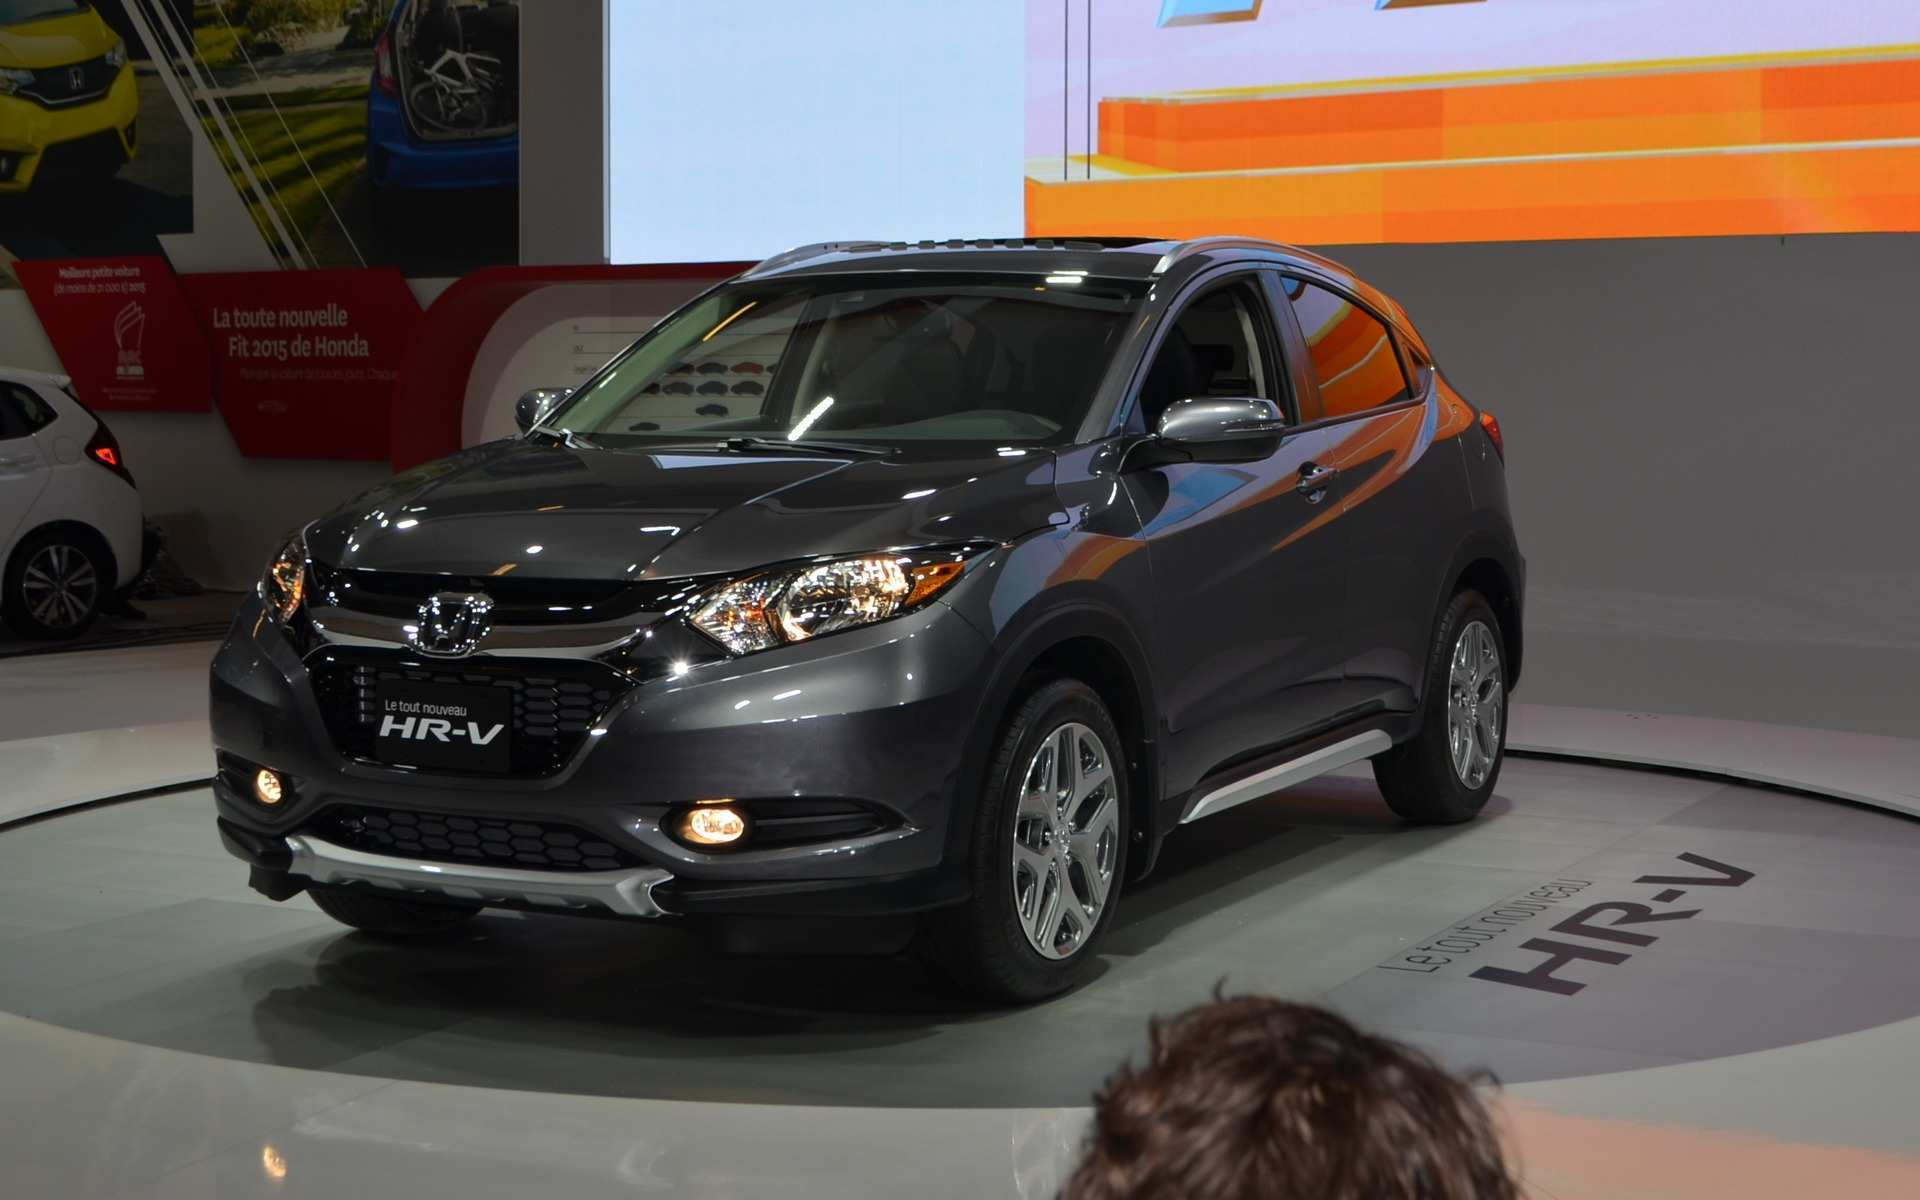 48 A 2019 Honda Hrv Rumors Price Design And Review